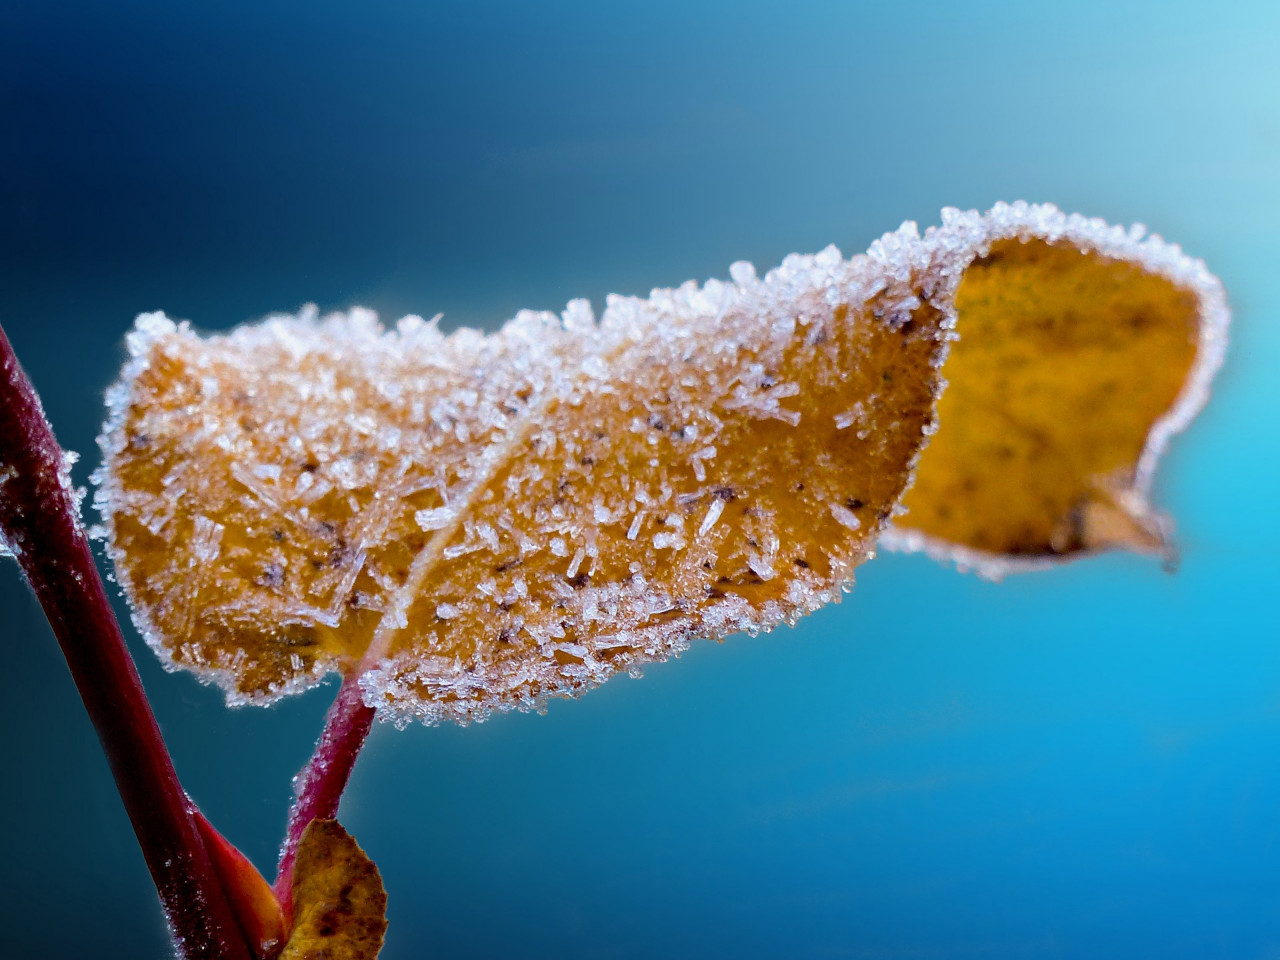 Frosted leaf | 1280x960 wallpaper